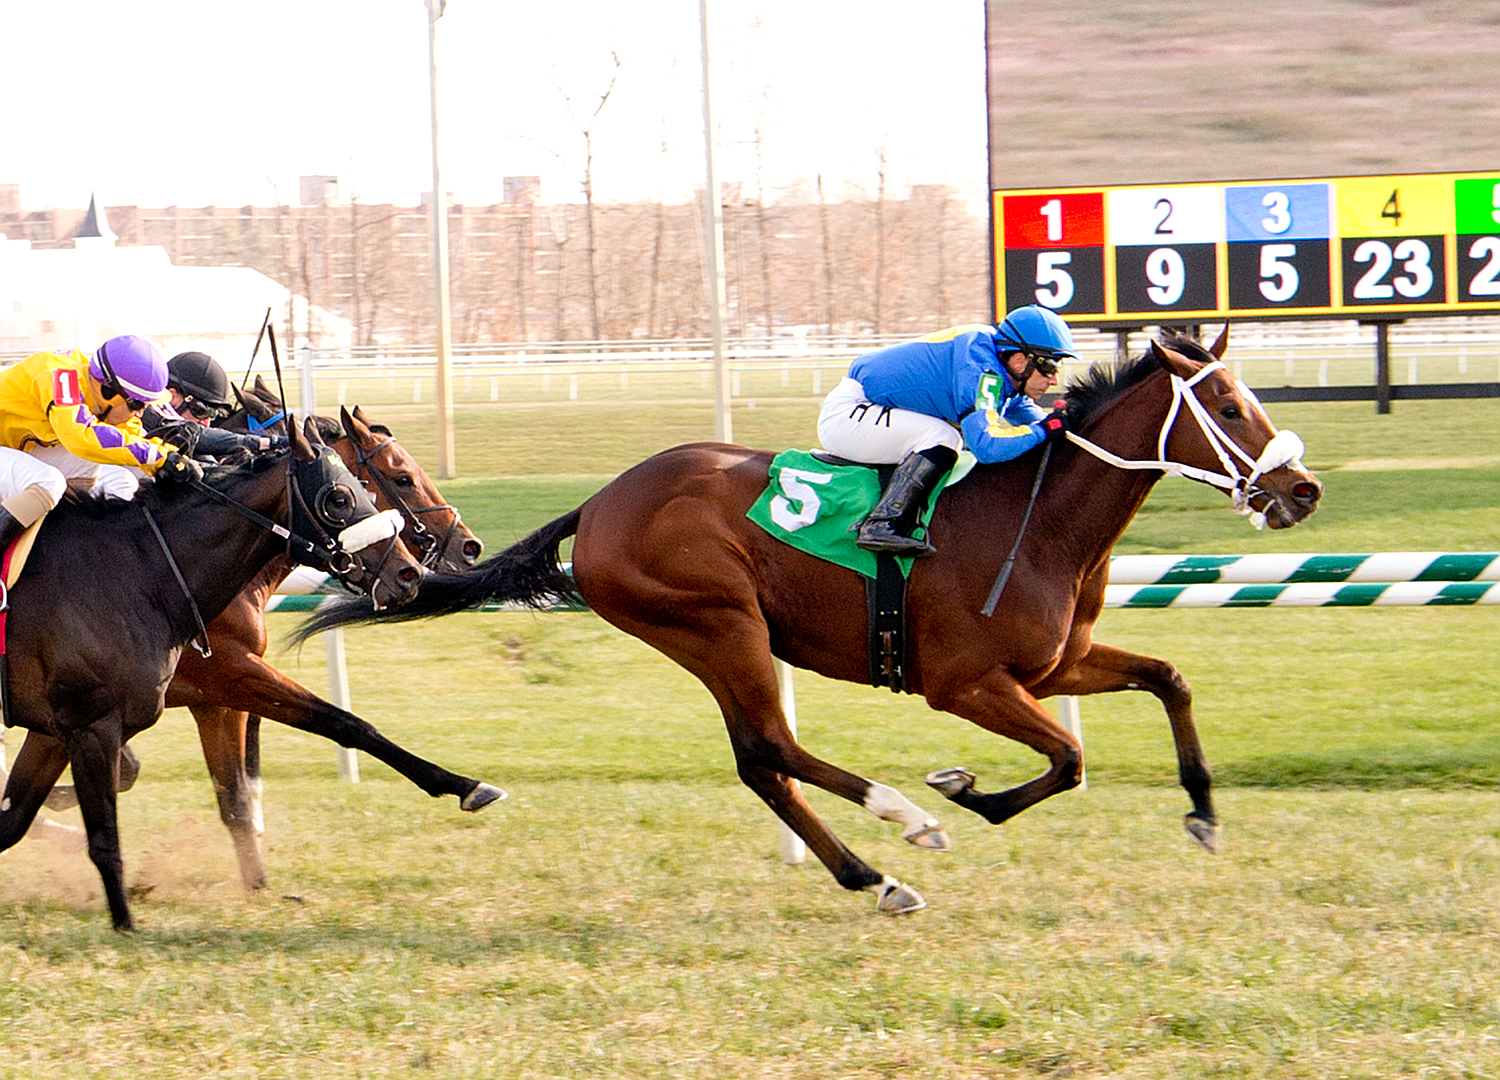 Fly E Dubai earned a win in his first lifetime start November 27th at Laurel. The upset winner paid $44.80 to win. photo by Jim McCue.